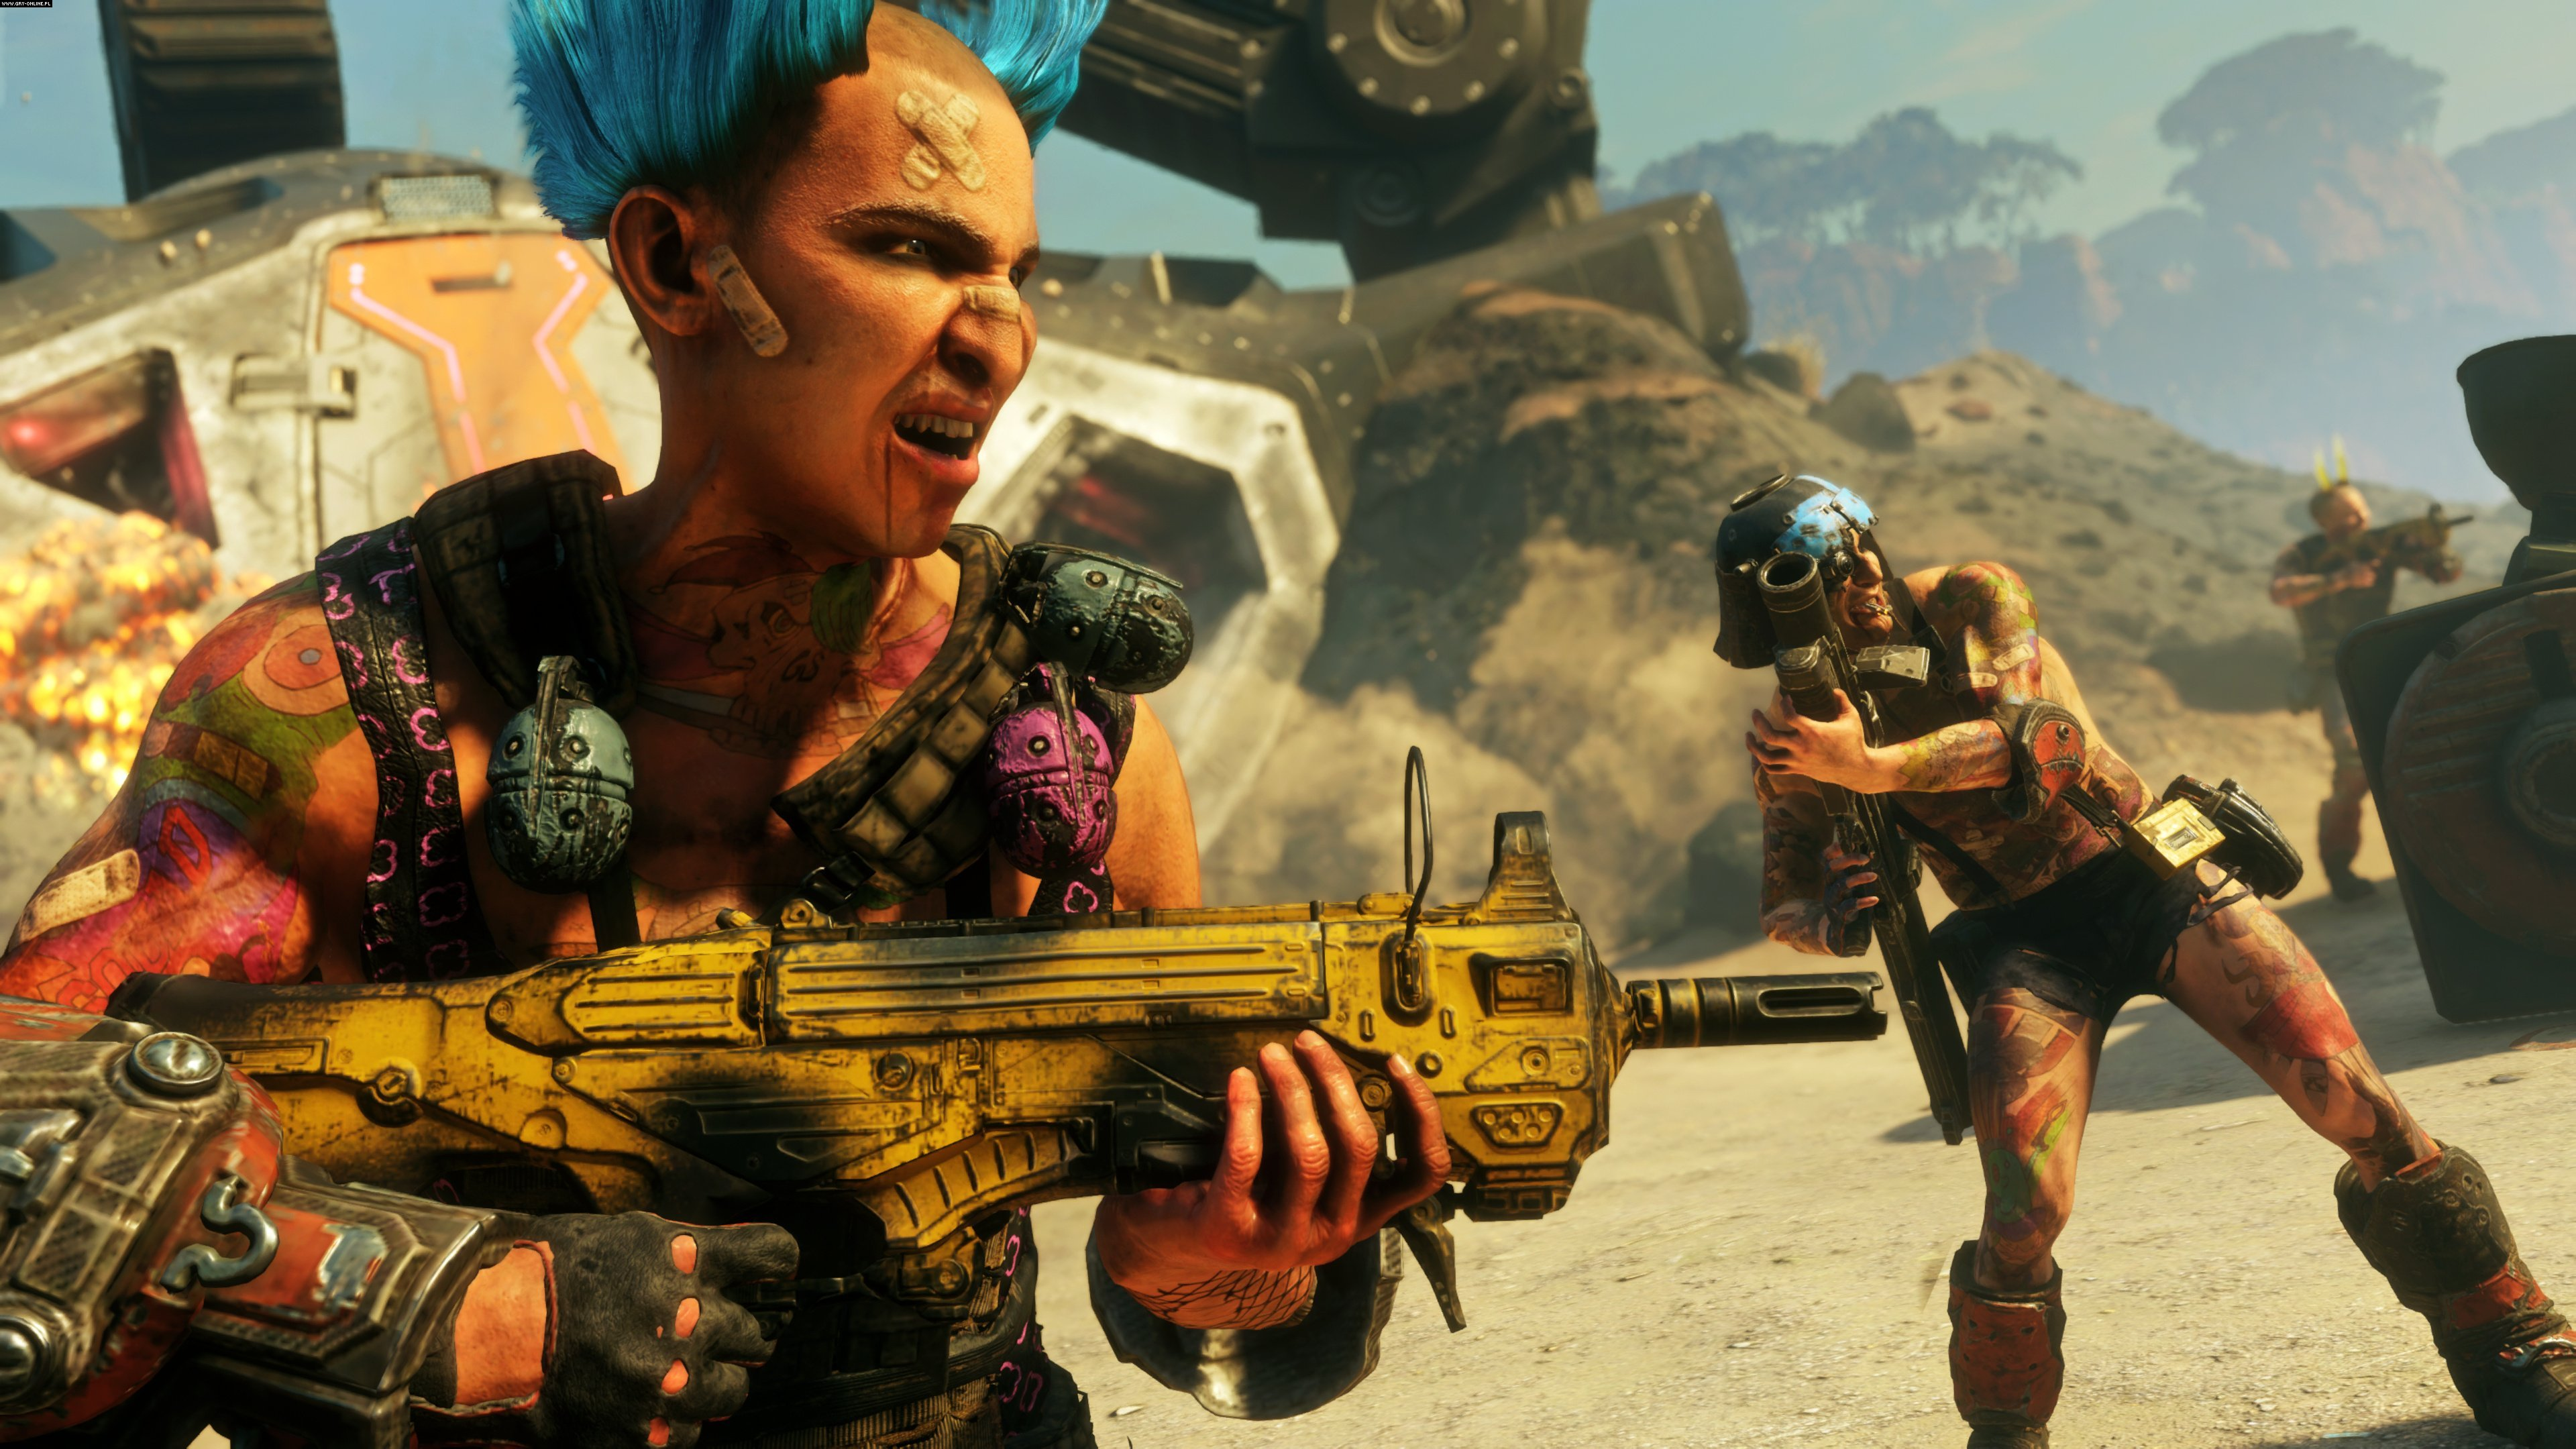 RAGE 2 PC, PS4, XONE Games Image 5/33, Avalanche Studios, Bethesda Softworks